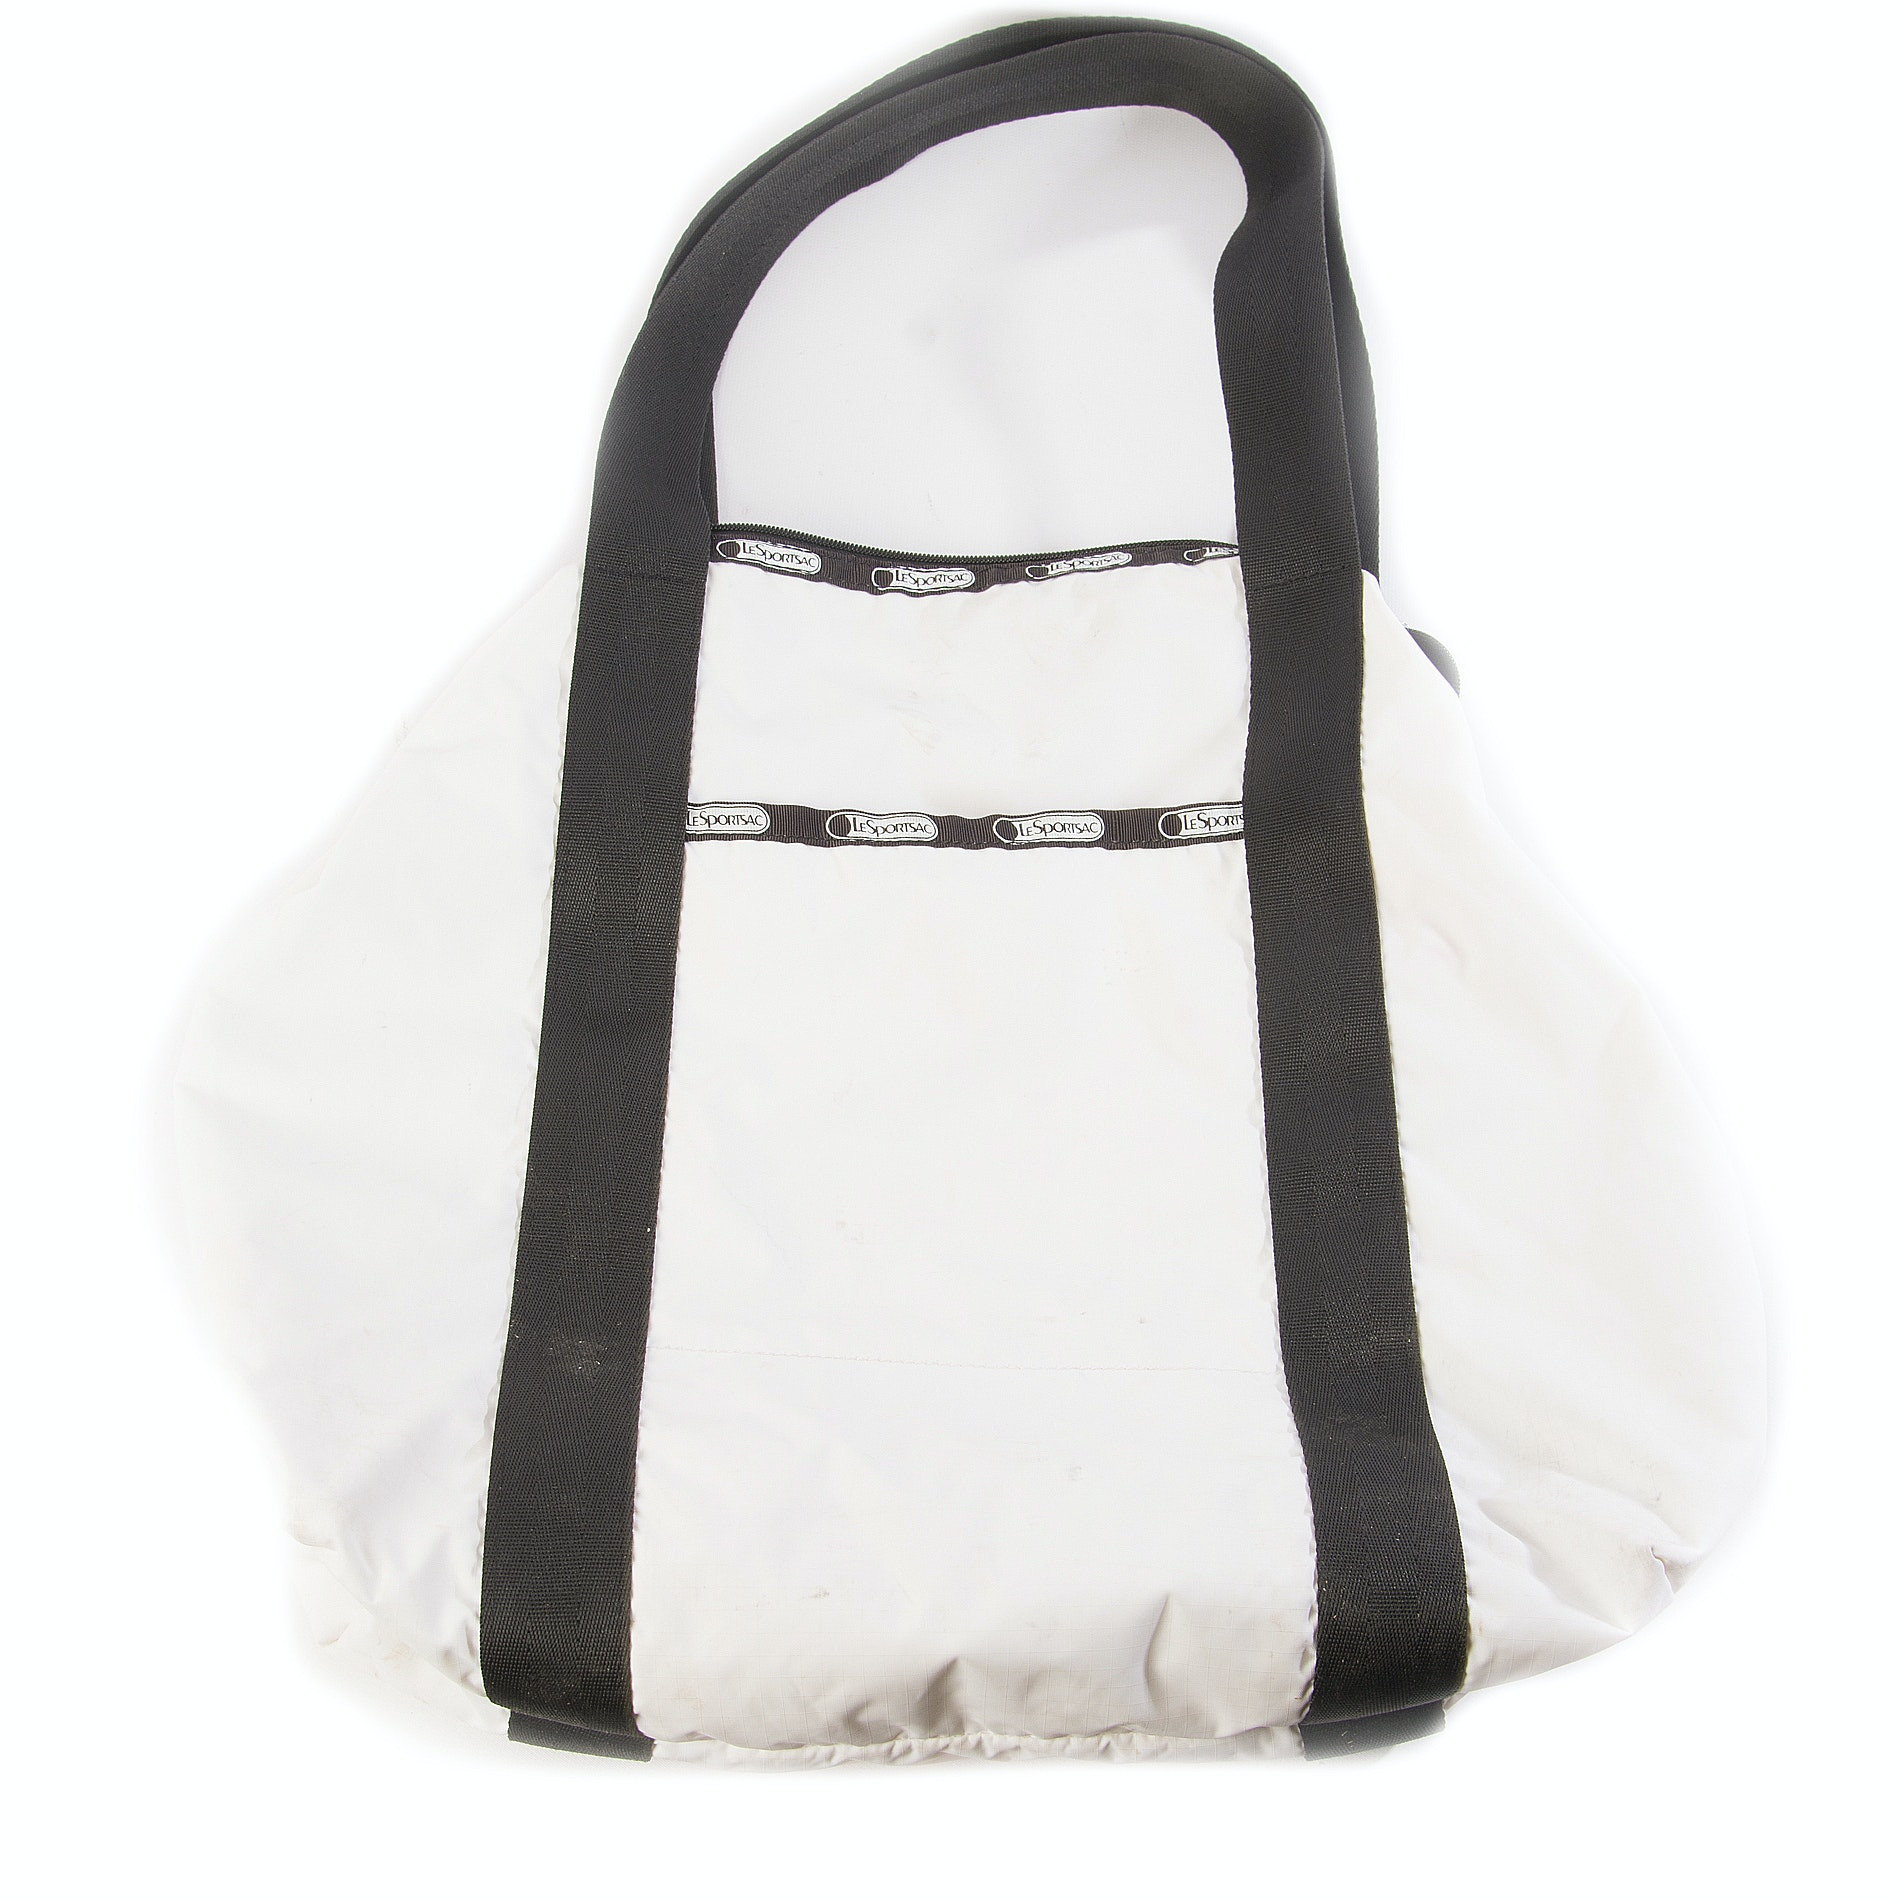 LeSportsac Limited Edition White and Black Tote